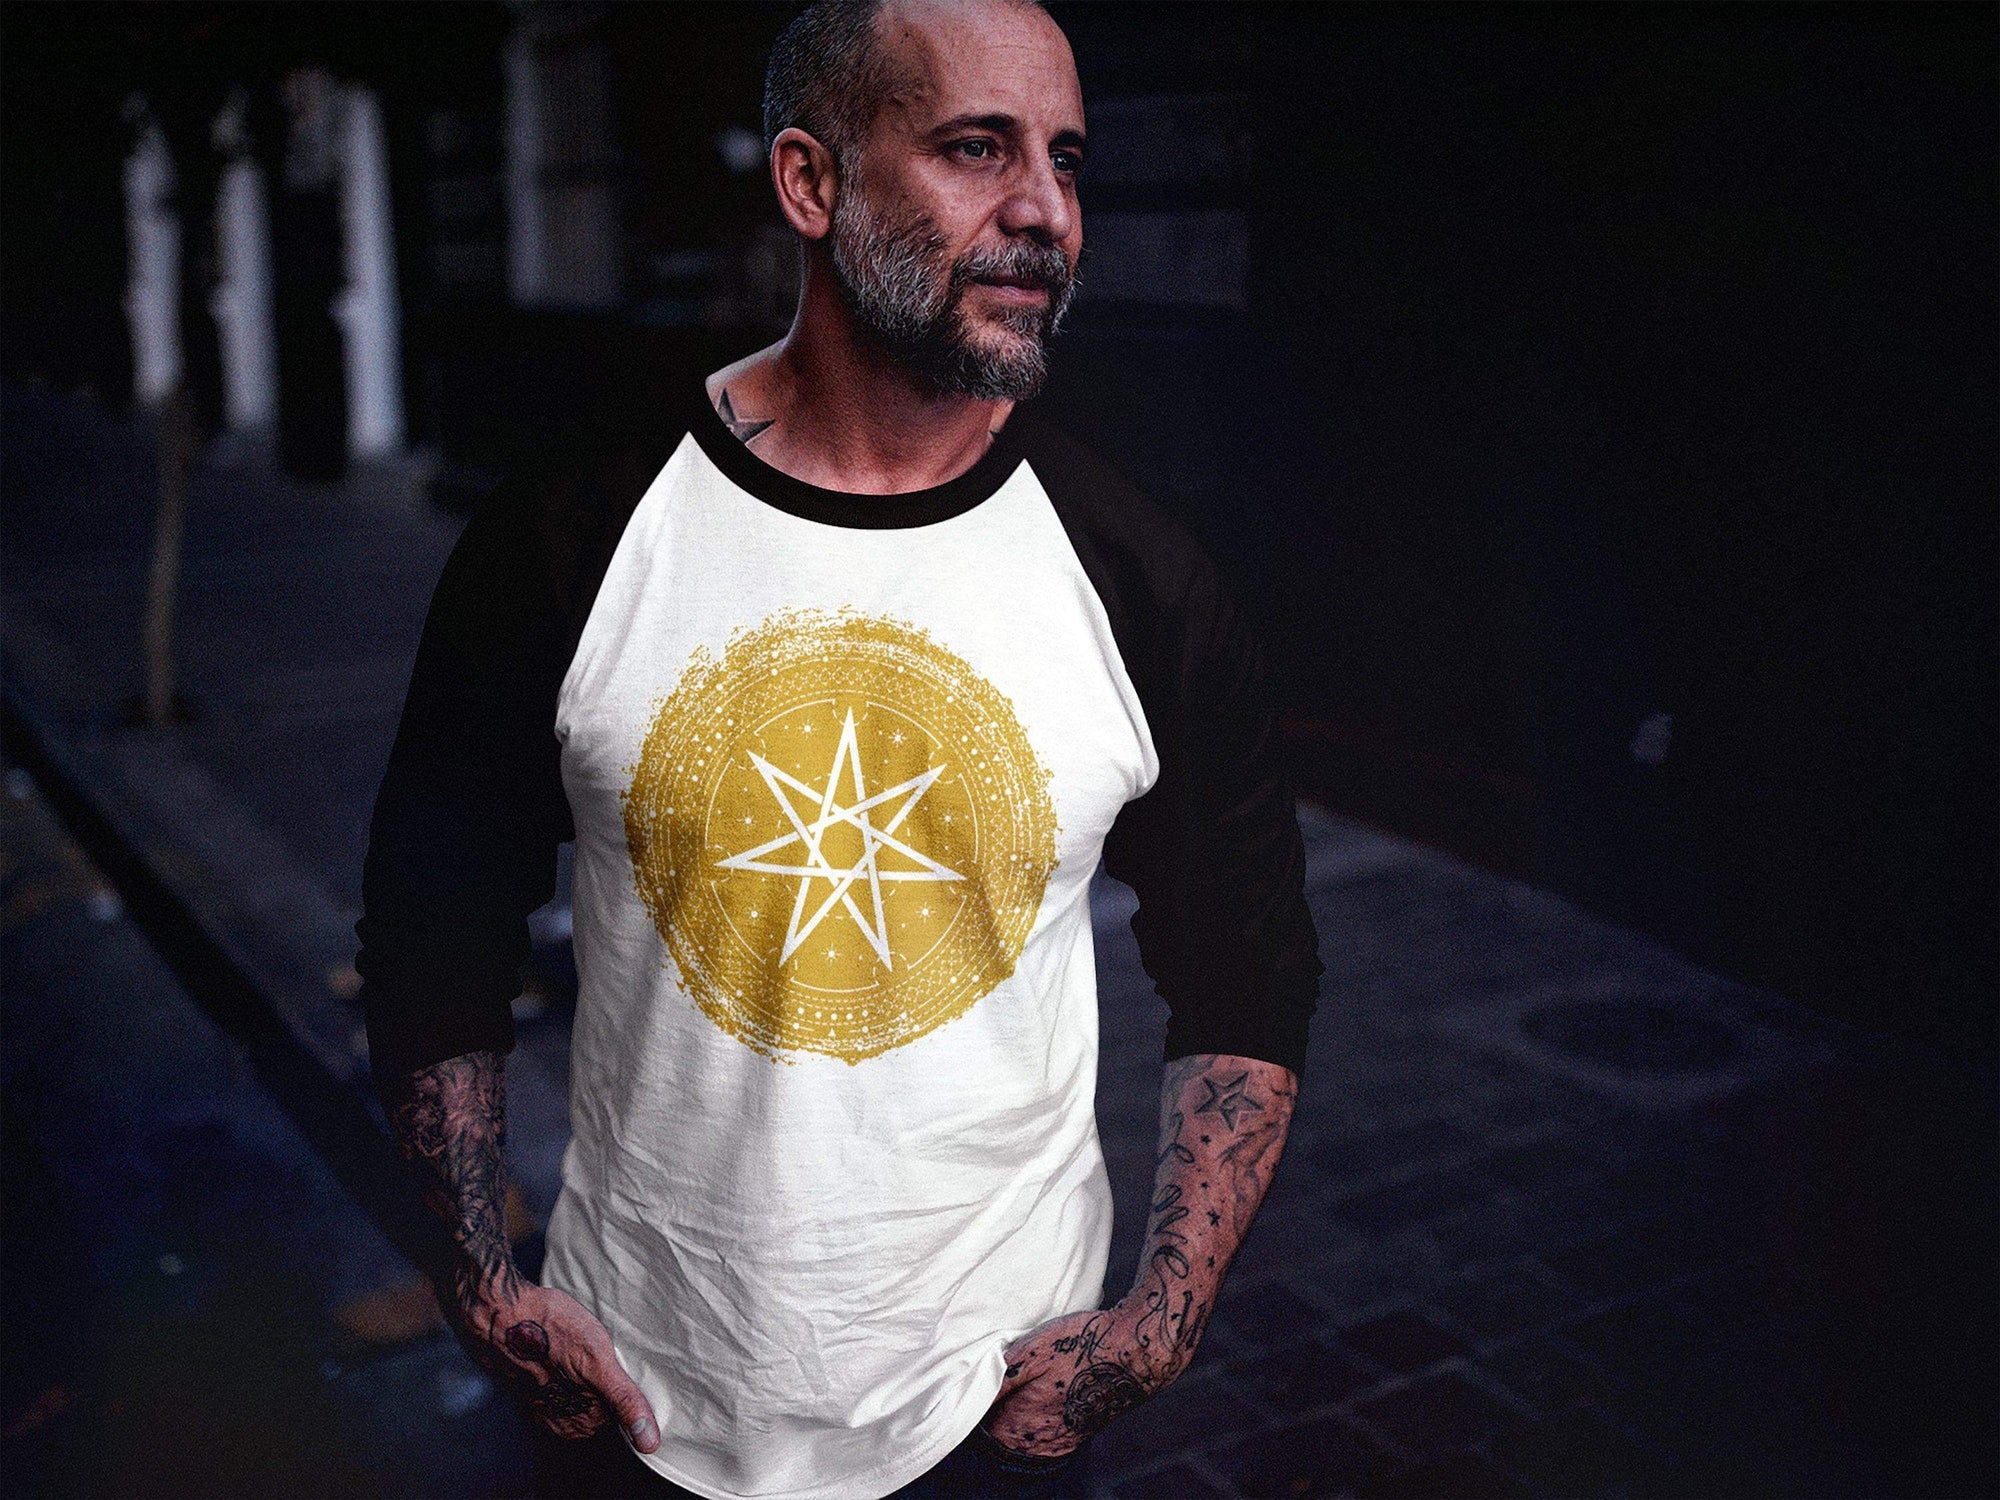 Wiccan Seven-Pointed Faery Star Unisex 3/4 Raglan Shirt Ancient Treasures Ancientreasures Viking Odin Thor Mjolnir Celtic Ancient Egypt Norse Norse Mythology